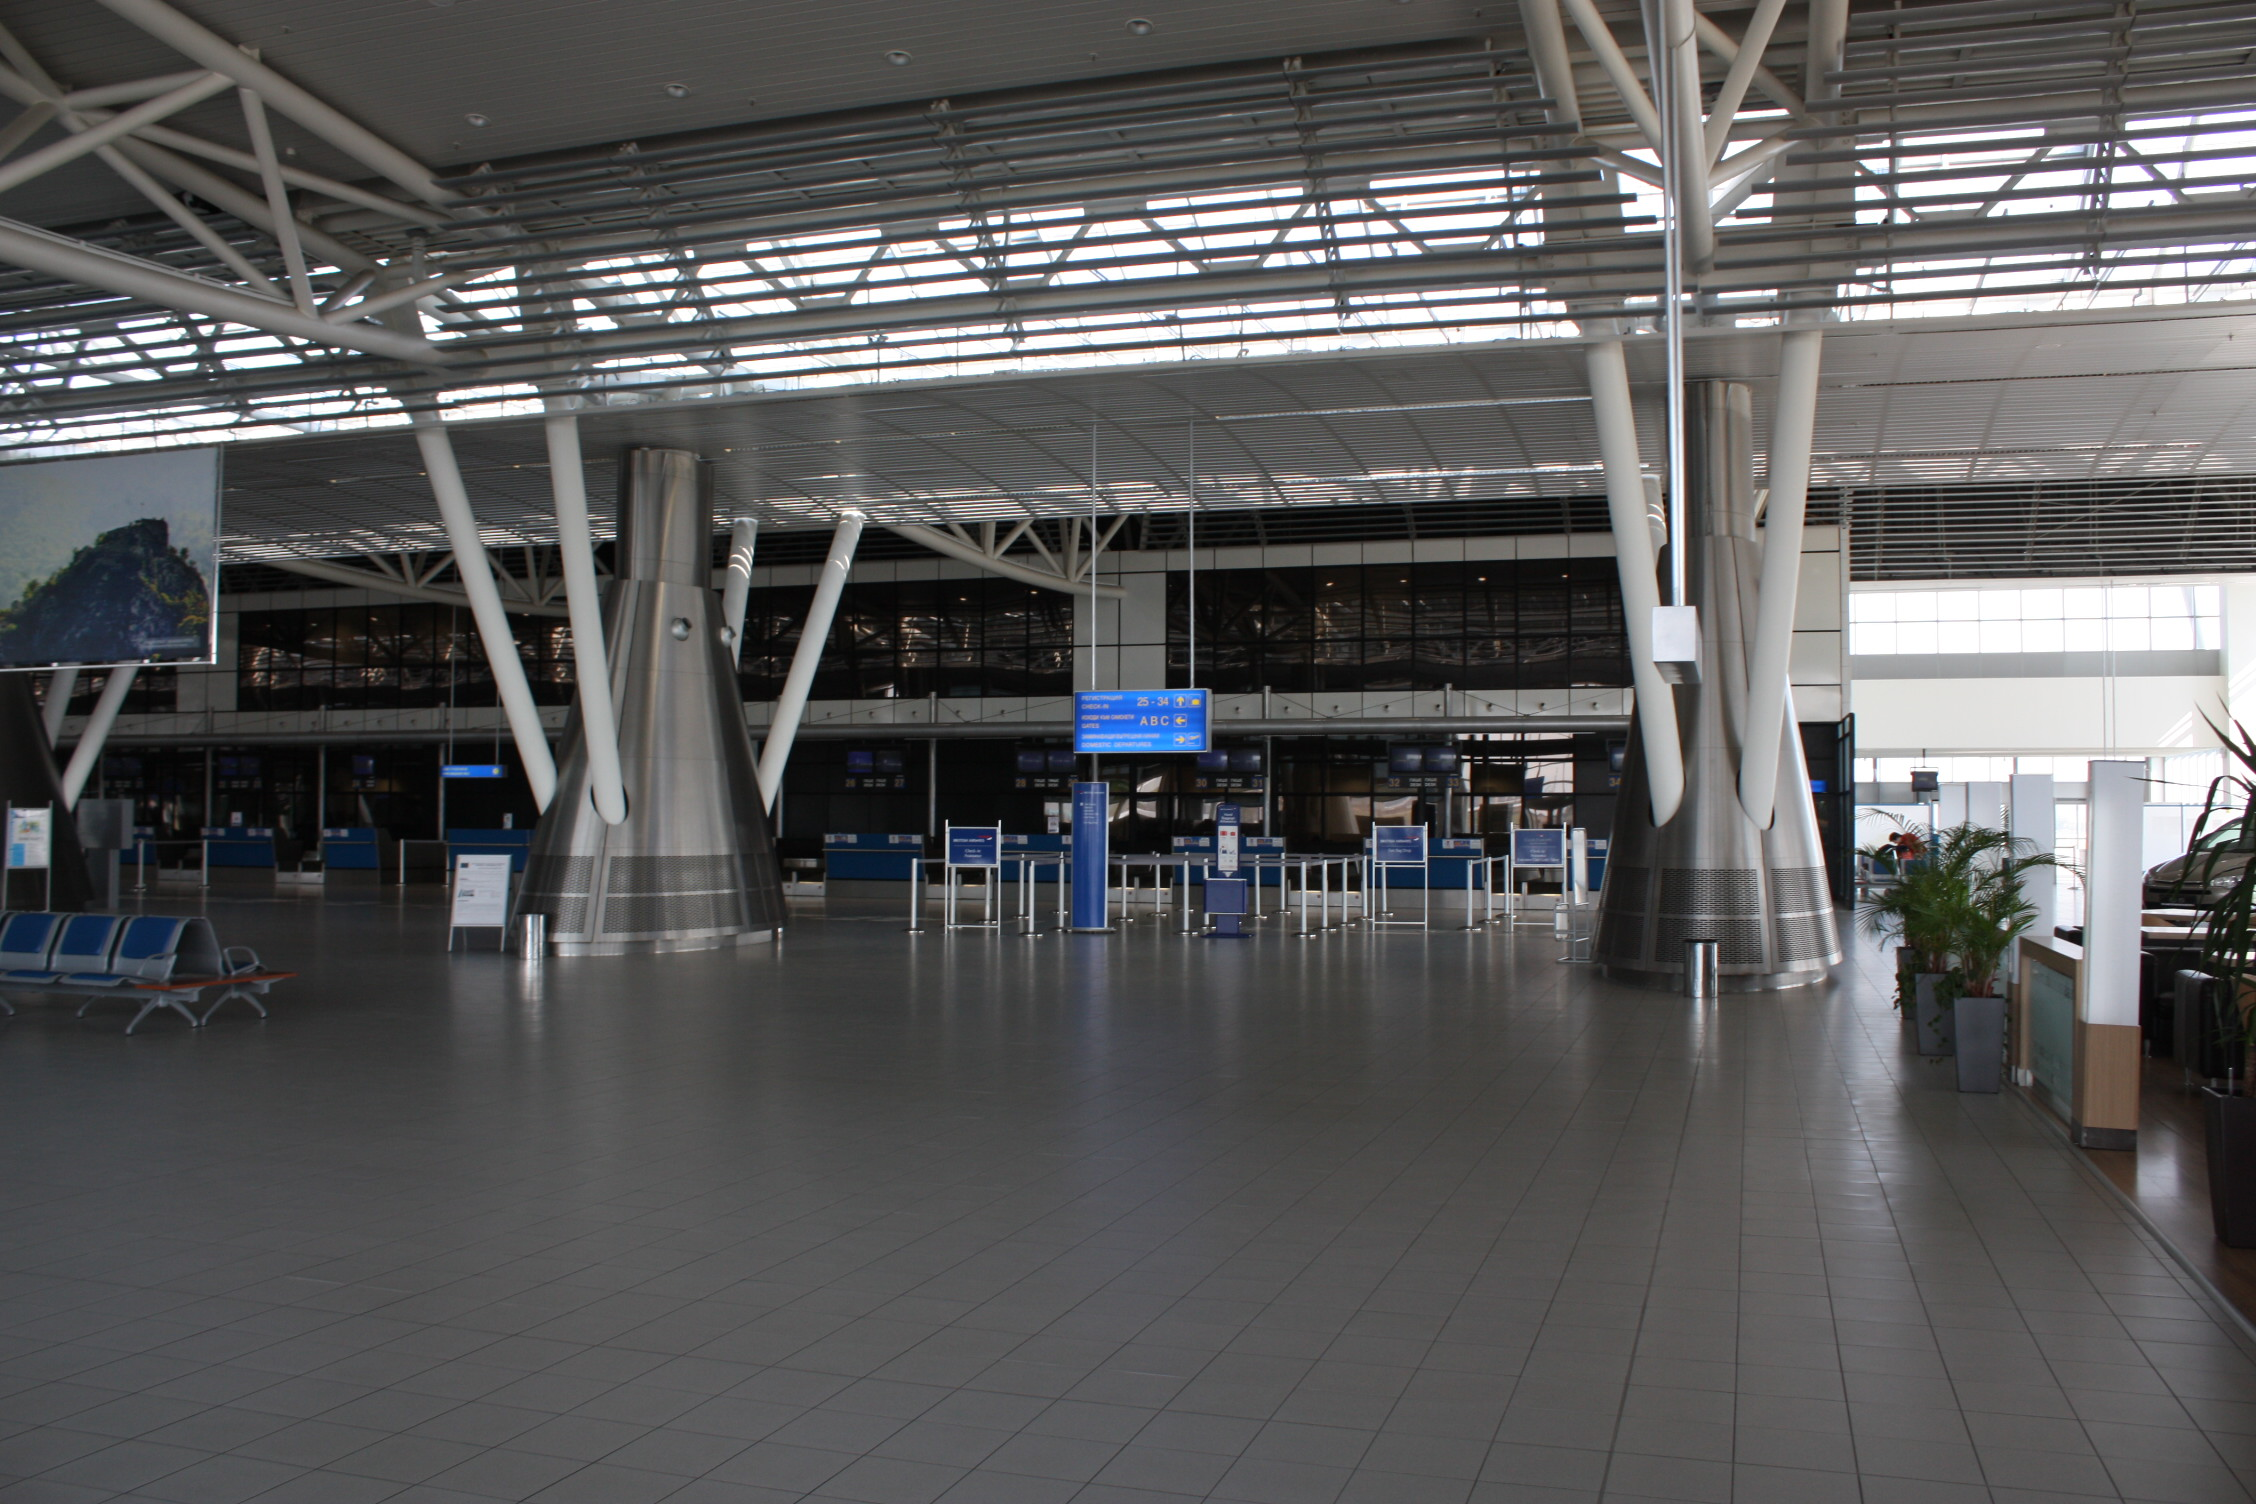 Airport - Bing images